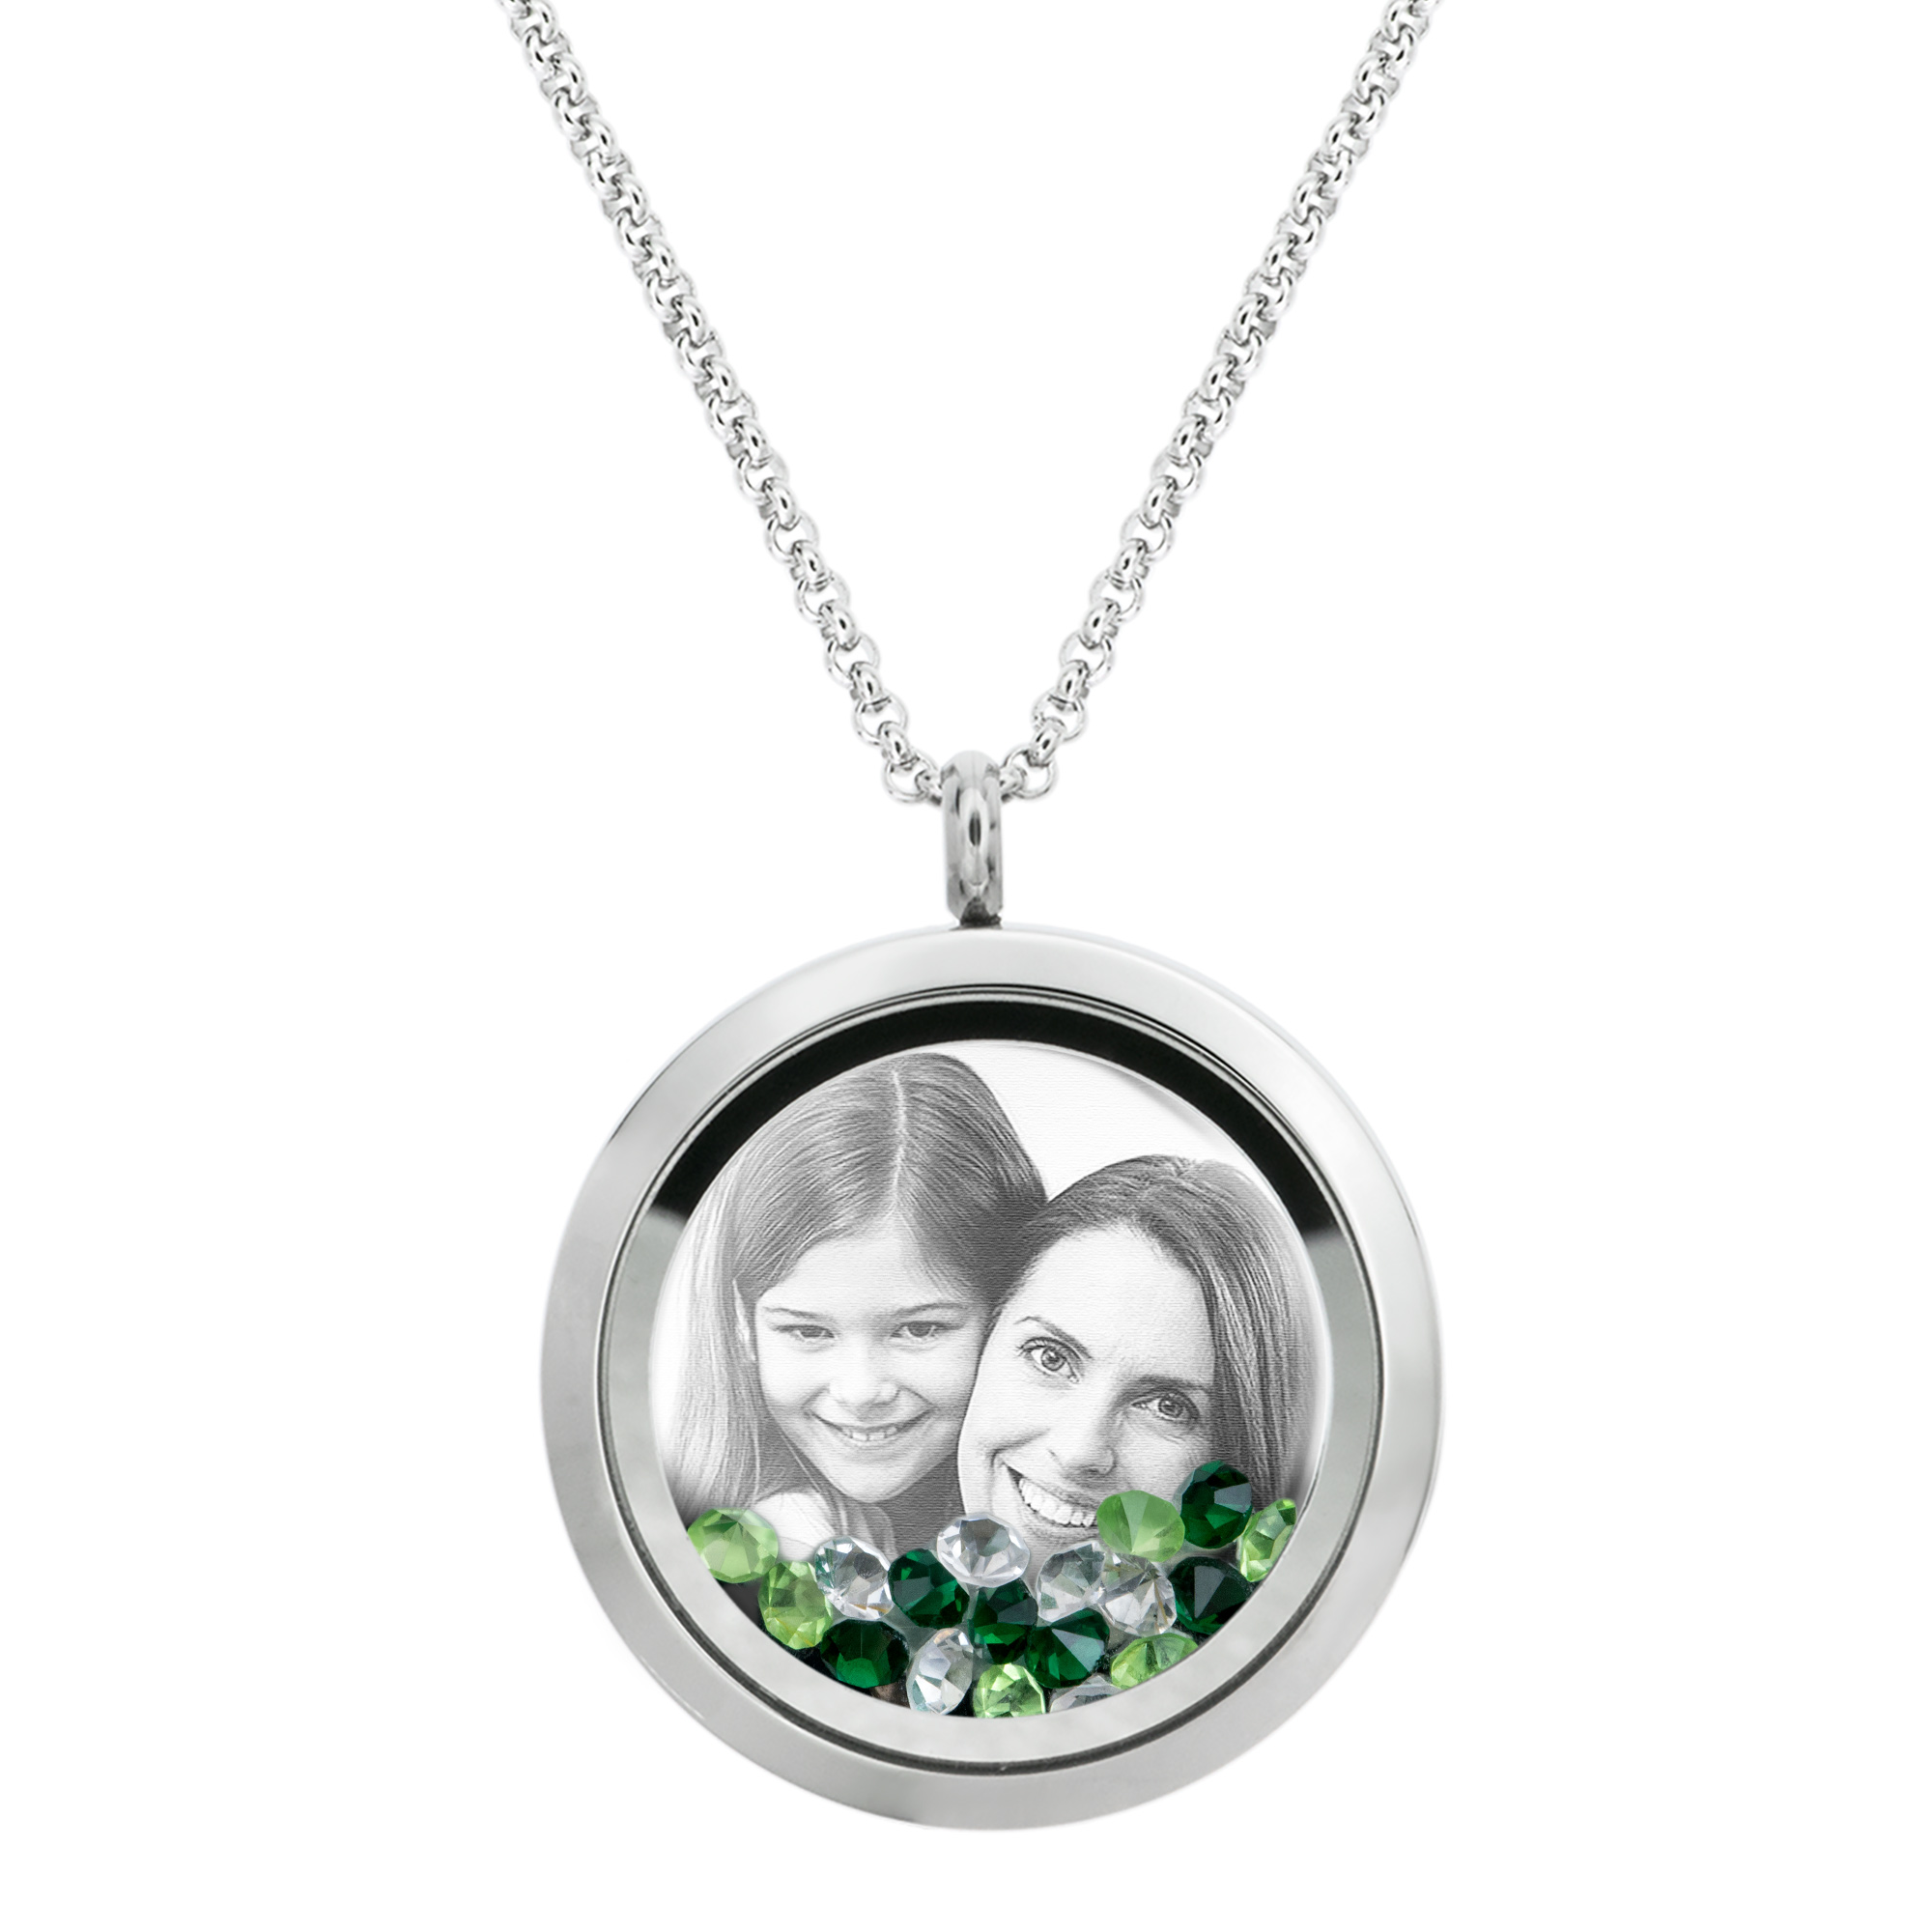 Best Mom Mother Stainless Steel Laser Engraved Personalized Photo & Text Message Floating Locket Crystals Necklace Pendant Green